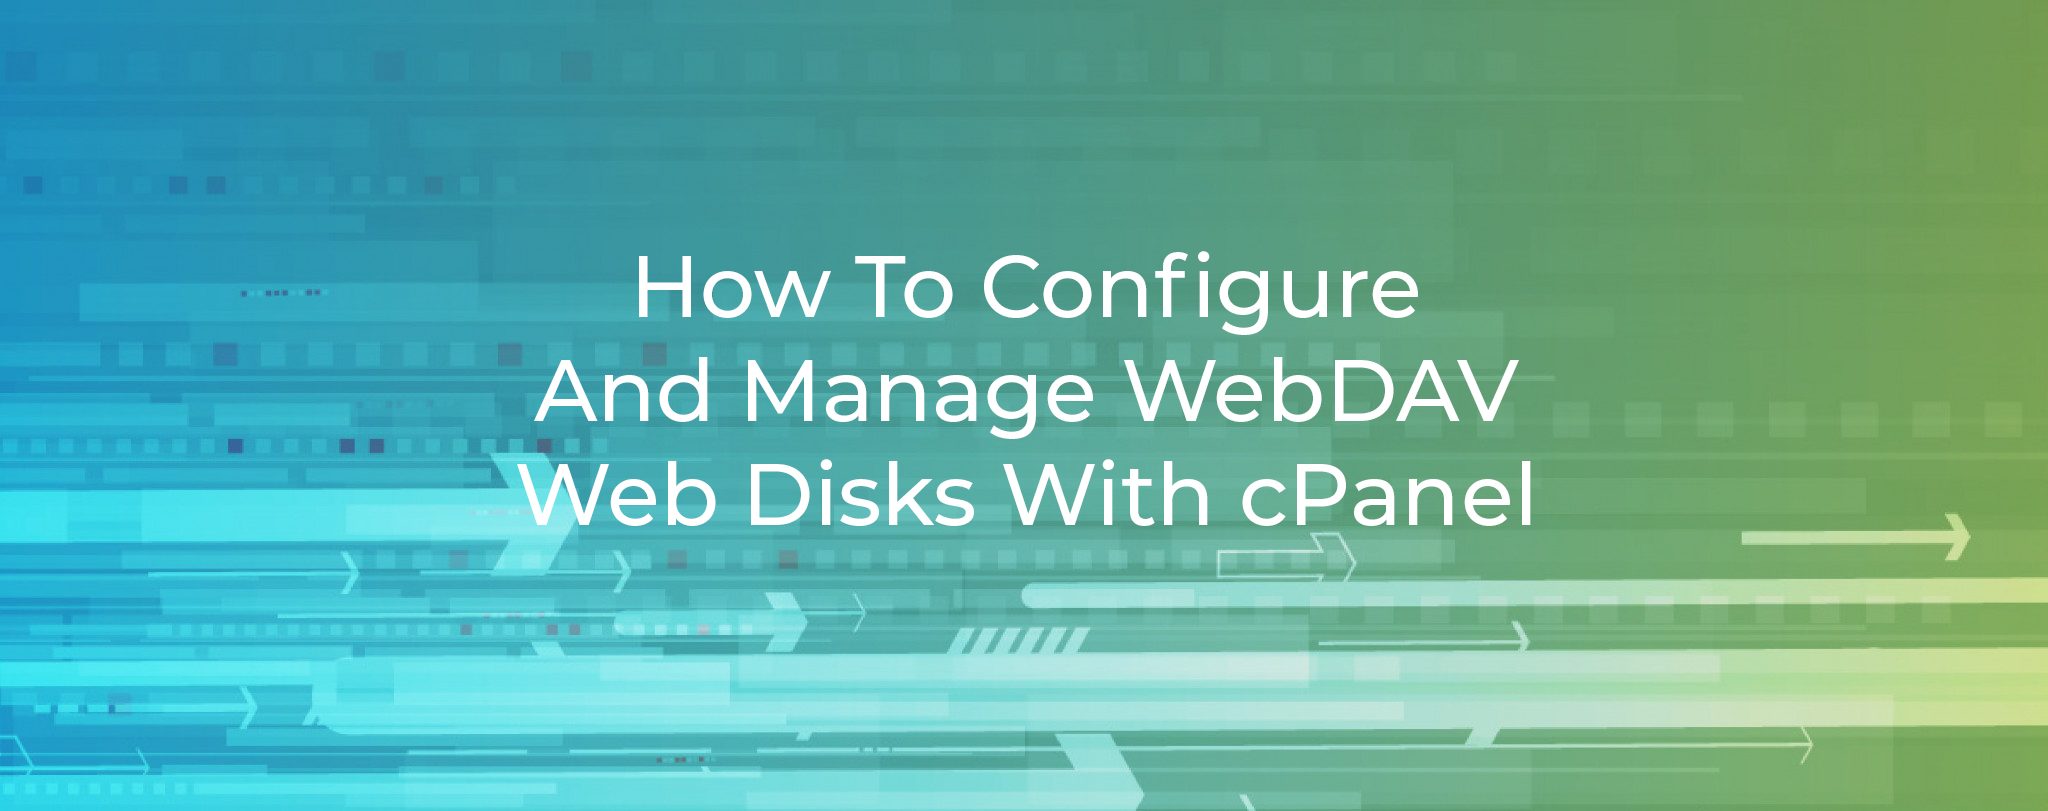 How To Configure And Manage WebDAV Web Disks With cPanel